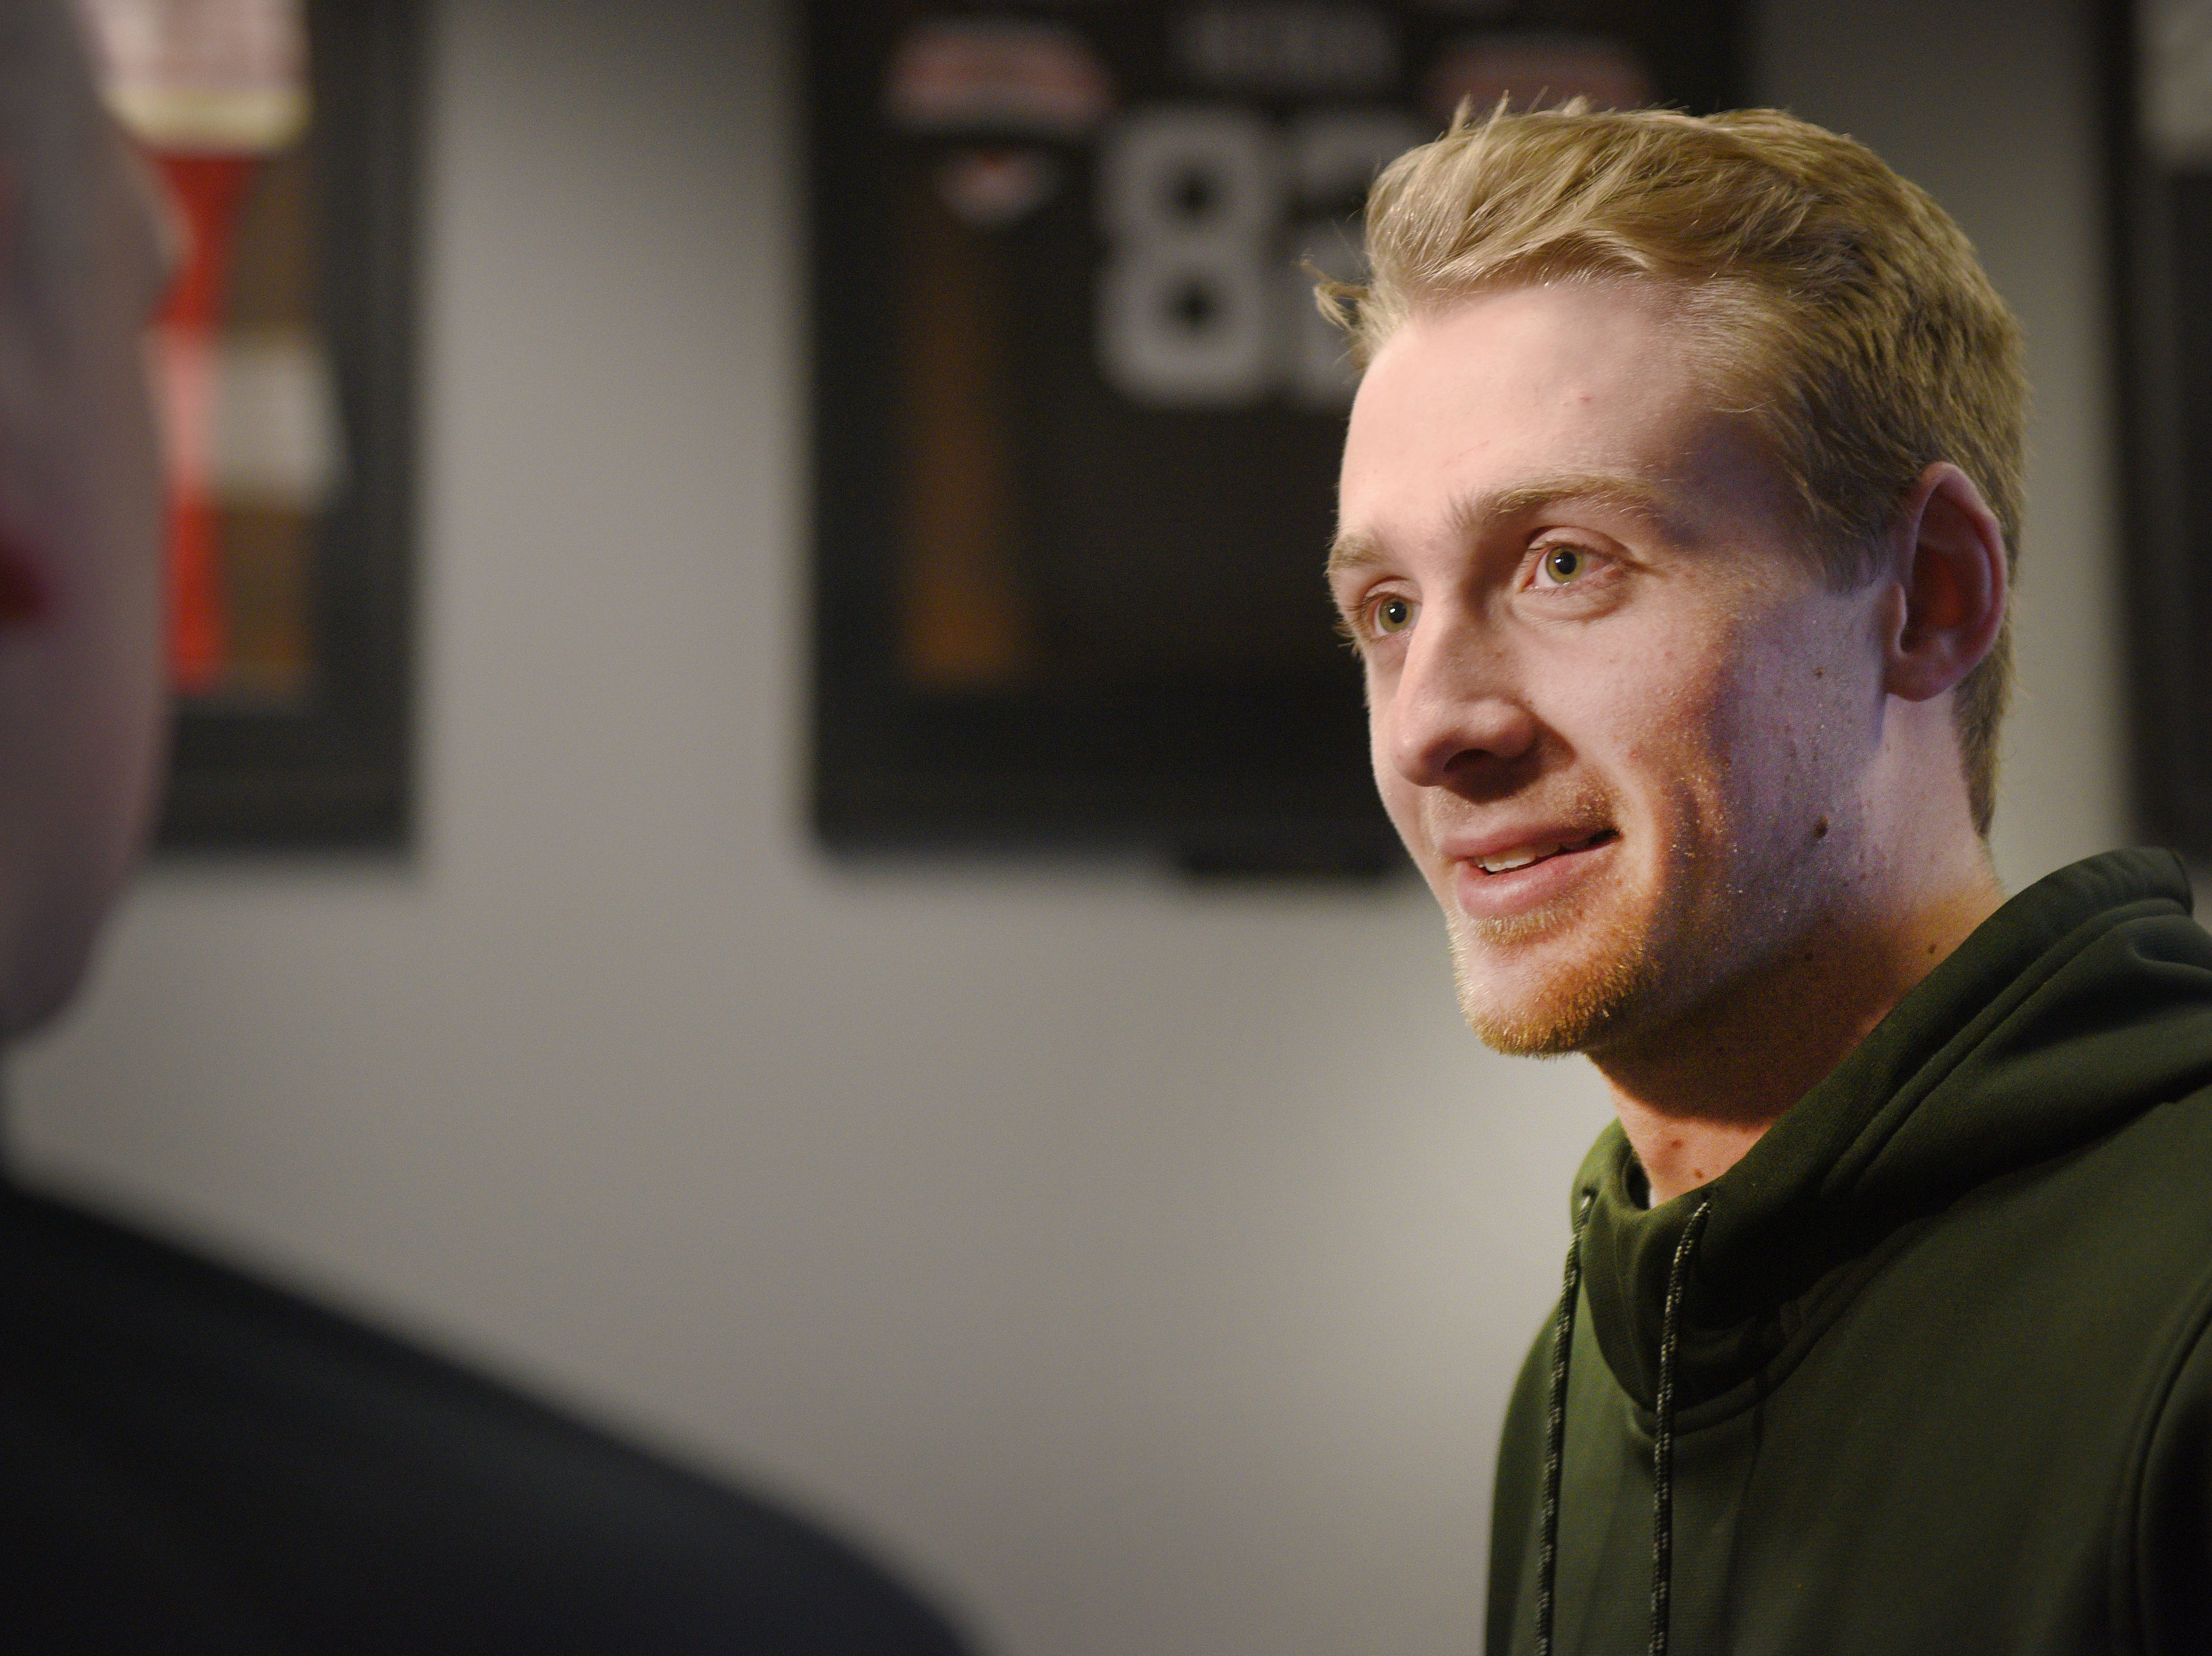 Washington's Jayden Johannsen gives interviews during signing day Wednesday, Feb. 6, at Avera Sports Institute in Sioux Falls. Johannsen singed a National Letter of Intent to play football at North Dakota State University.